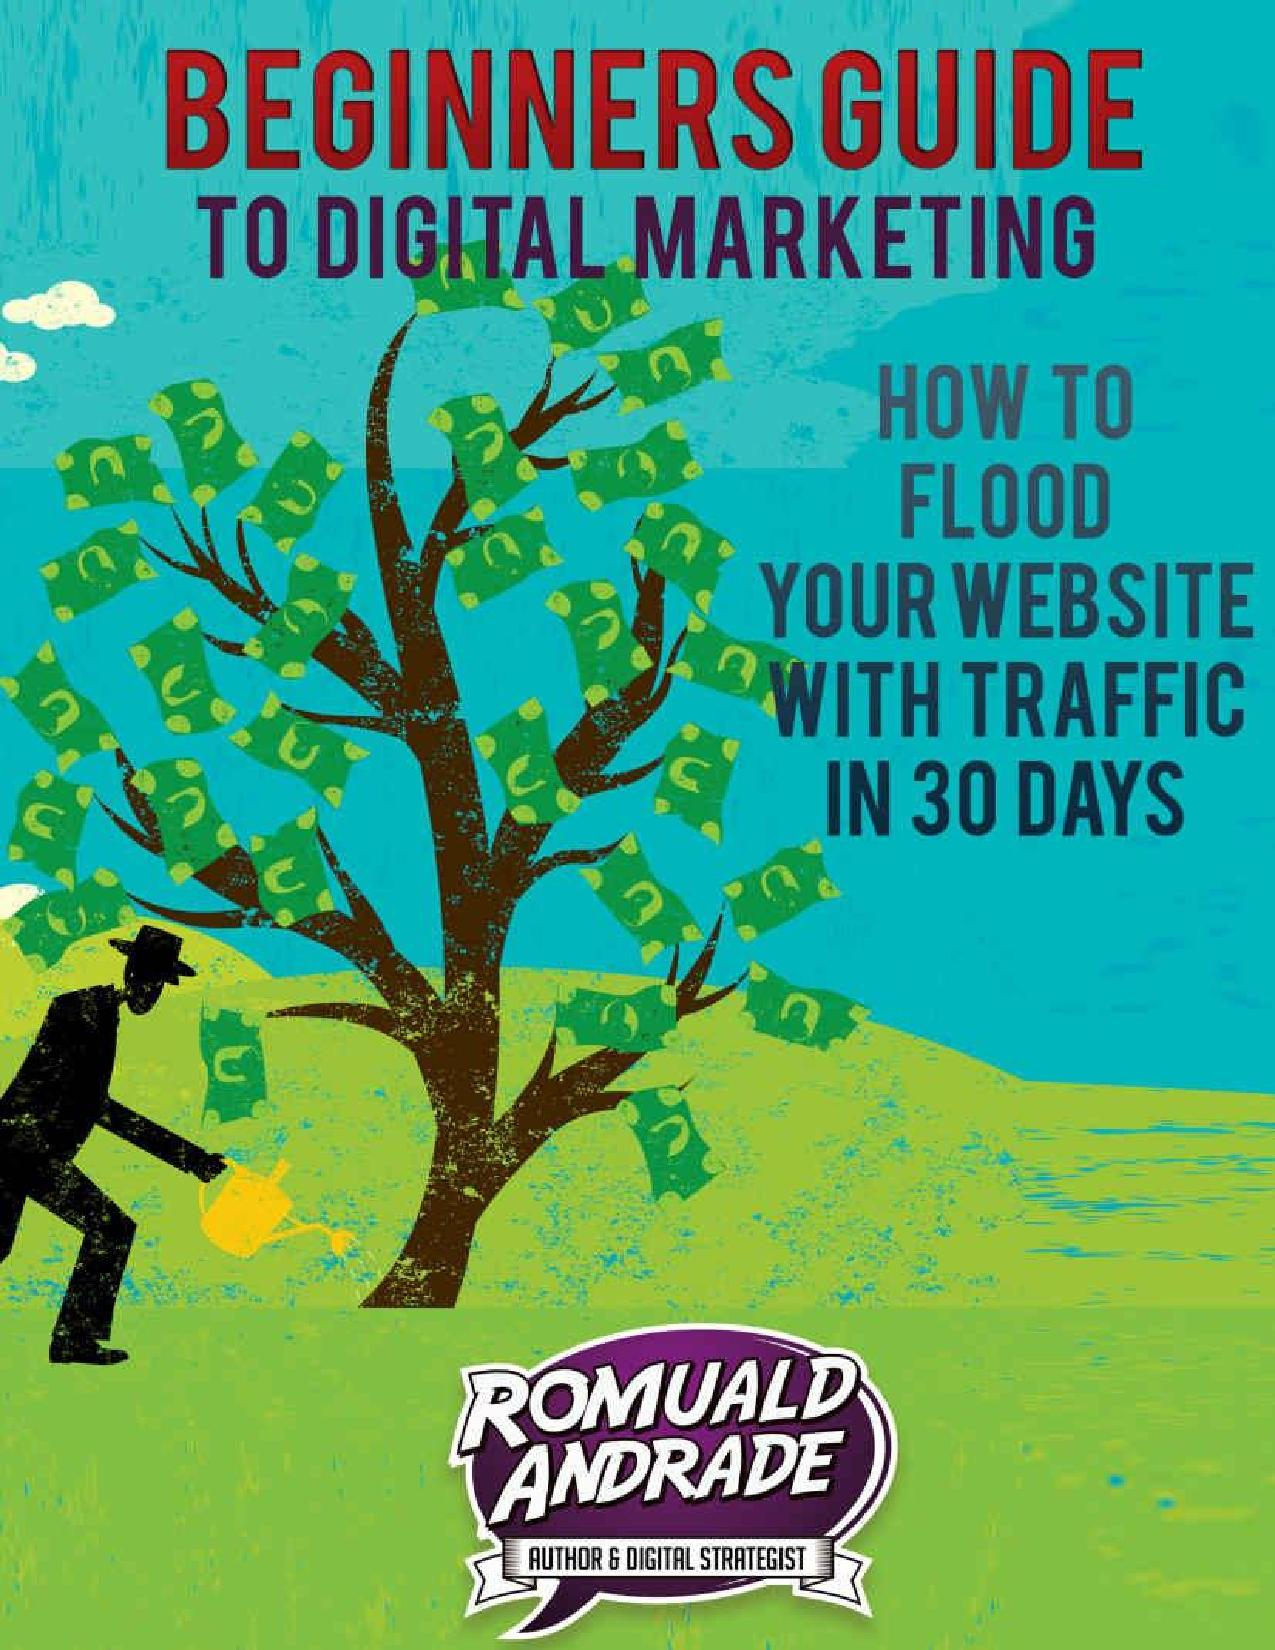 Beginners Guide To Digital Marketing - How to Flood Your Website With Traffic In 30 Days